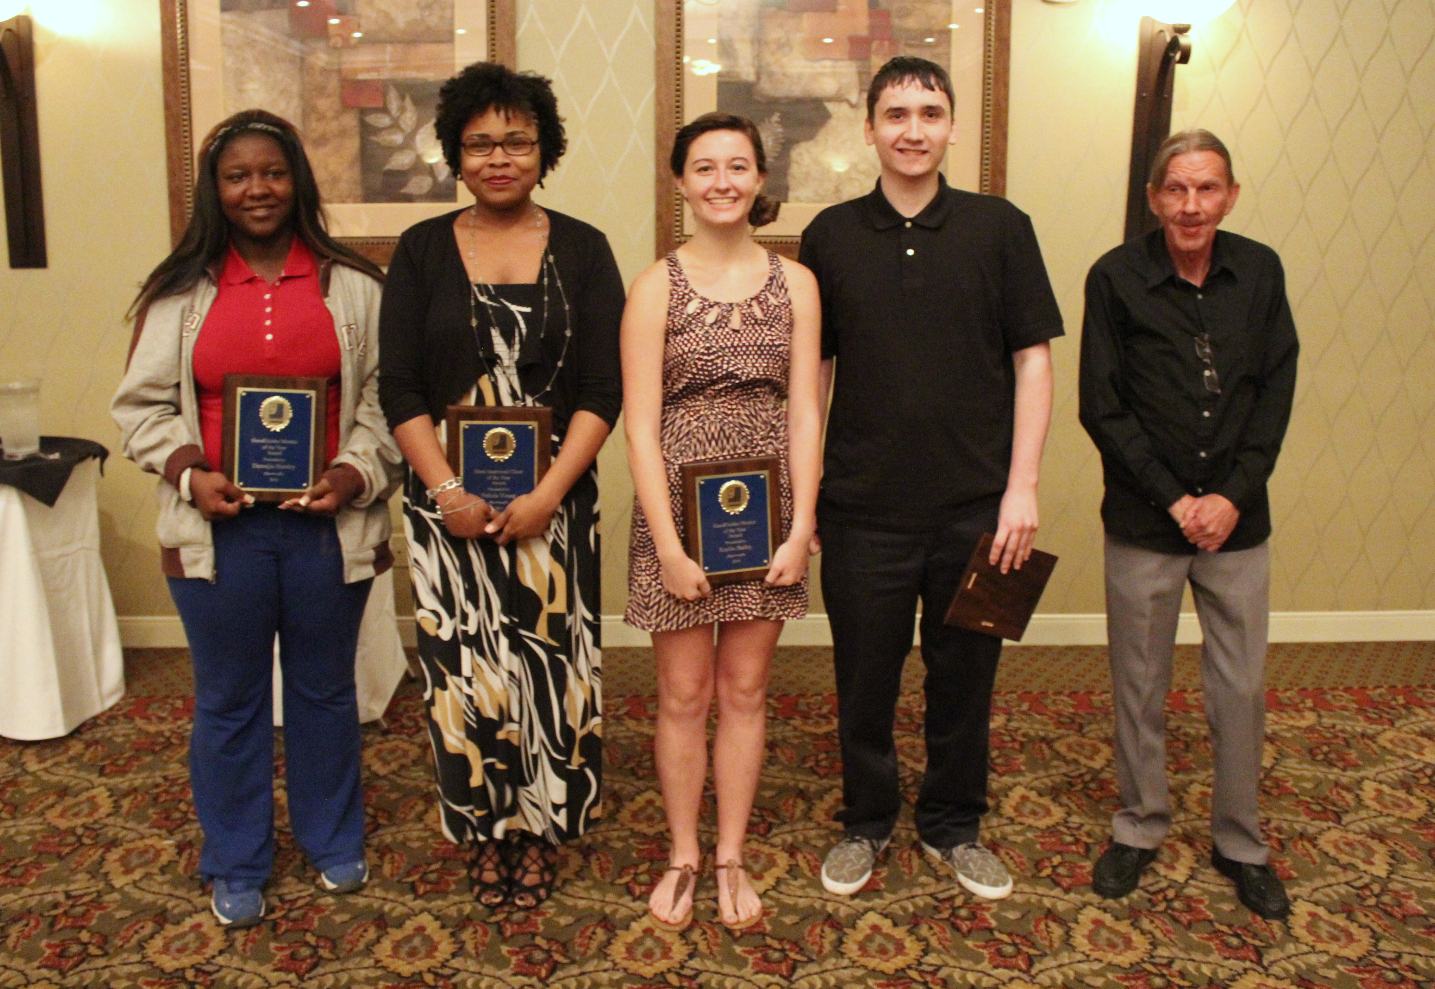 GoodGuides Mentee of the Year: Danasjia Horsley; Most Improved Client of the Year: Felicia Young; GoodGuides Mentor of the Year: Kaylin Bailey; Skill Training Client of the Year: Landon Conner; Worker of the Year: Donald Alloway